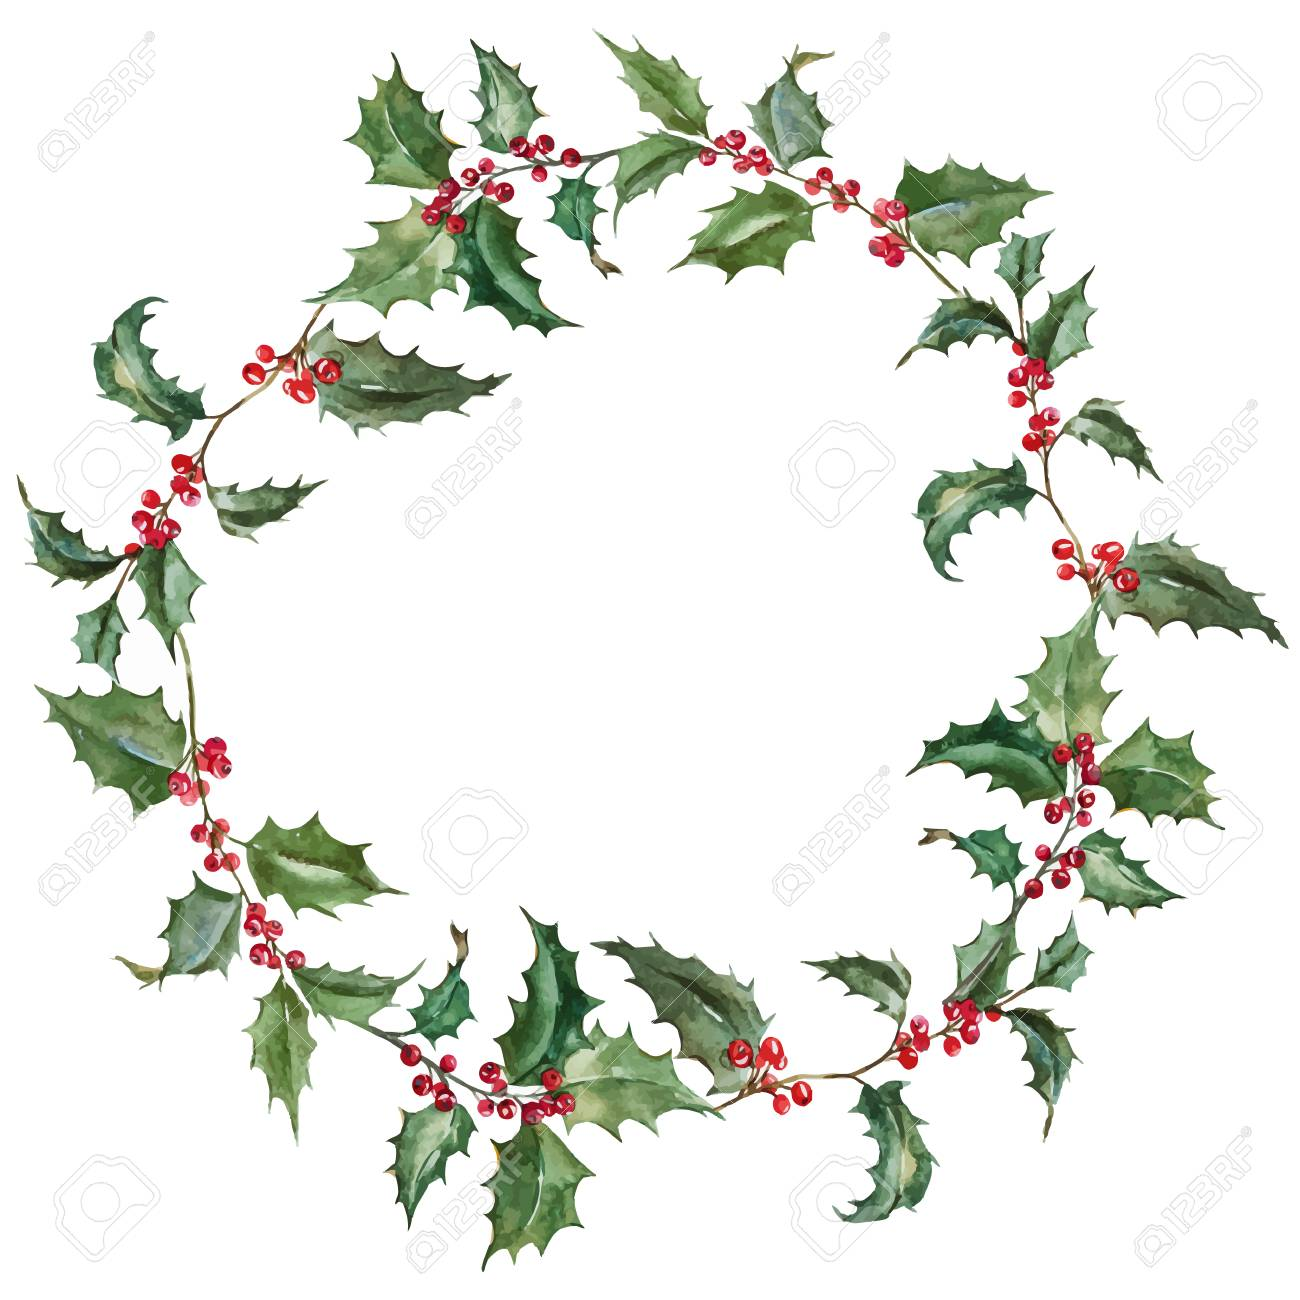 Beautiful Image With Nice Watercolor Christmas Wreath Royalty Free